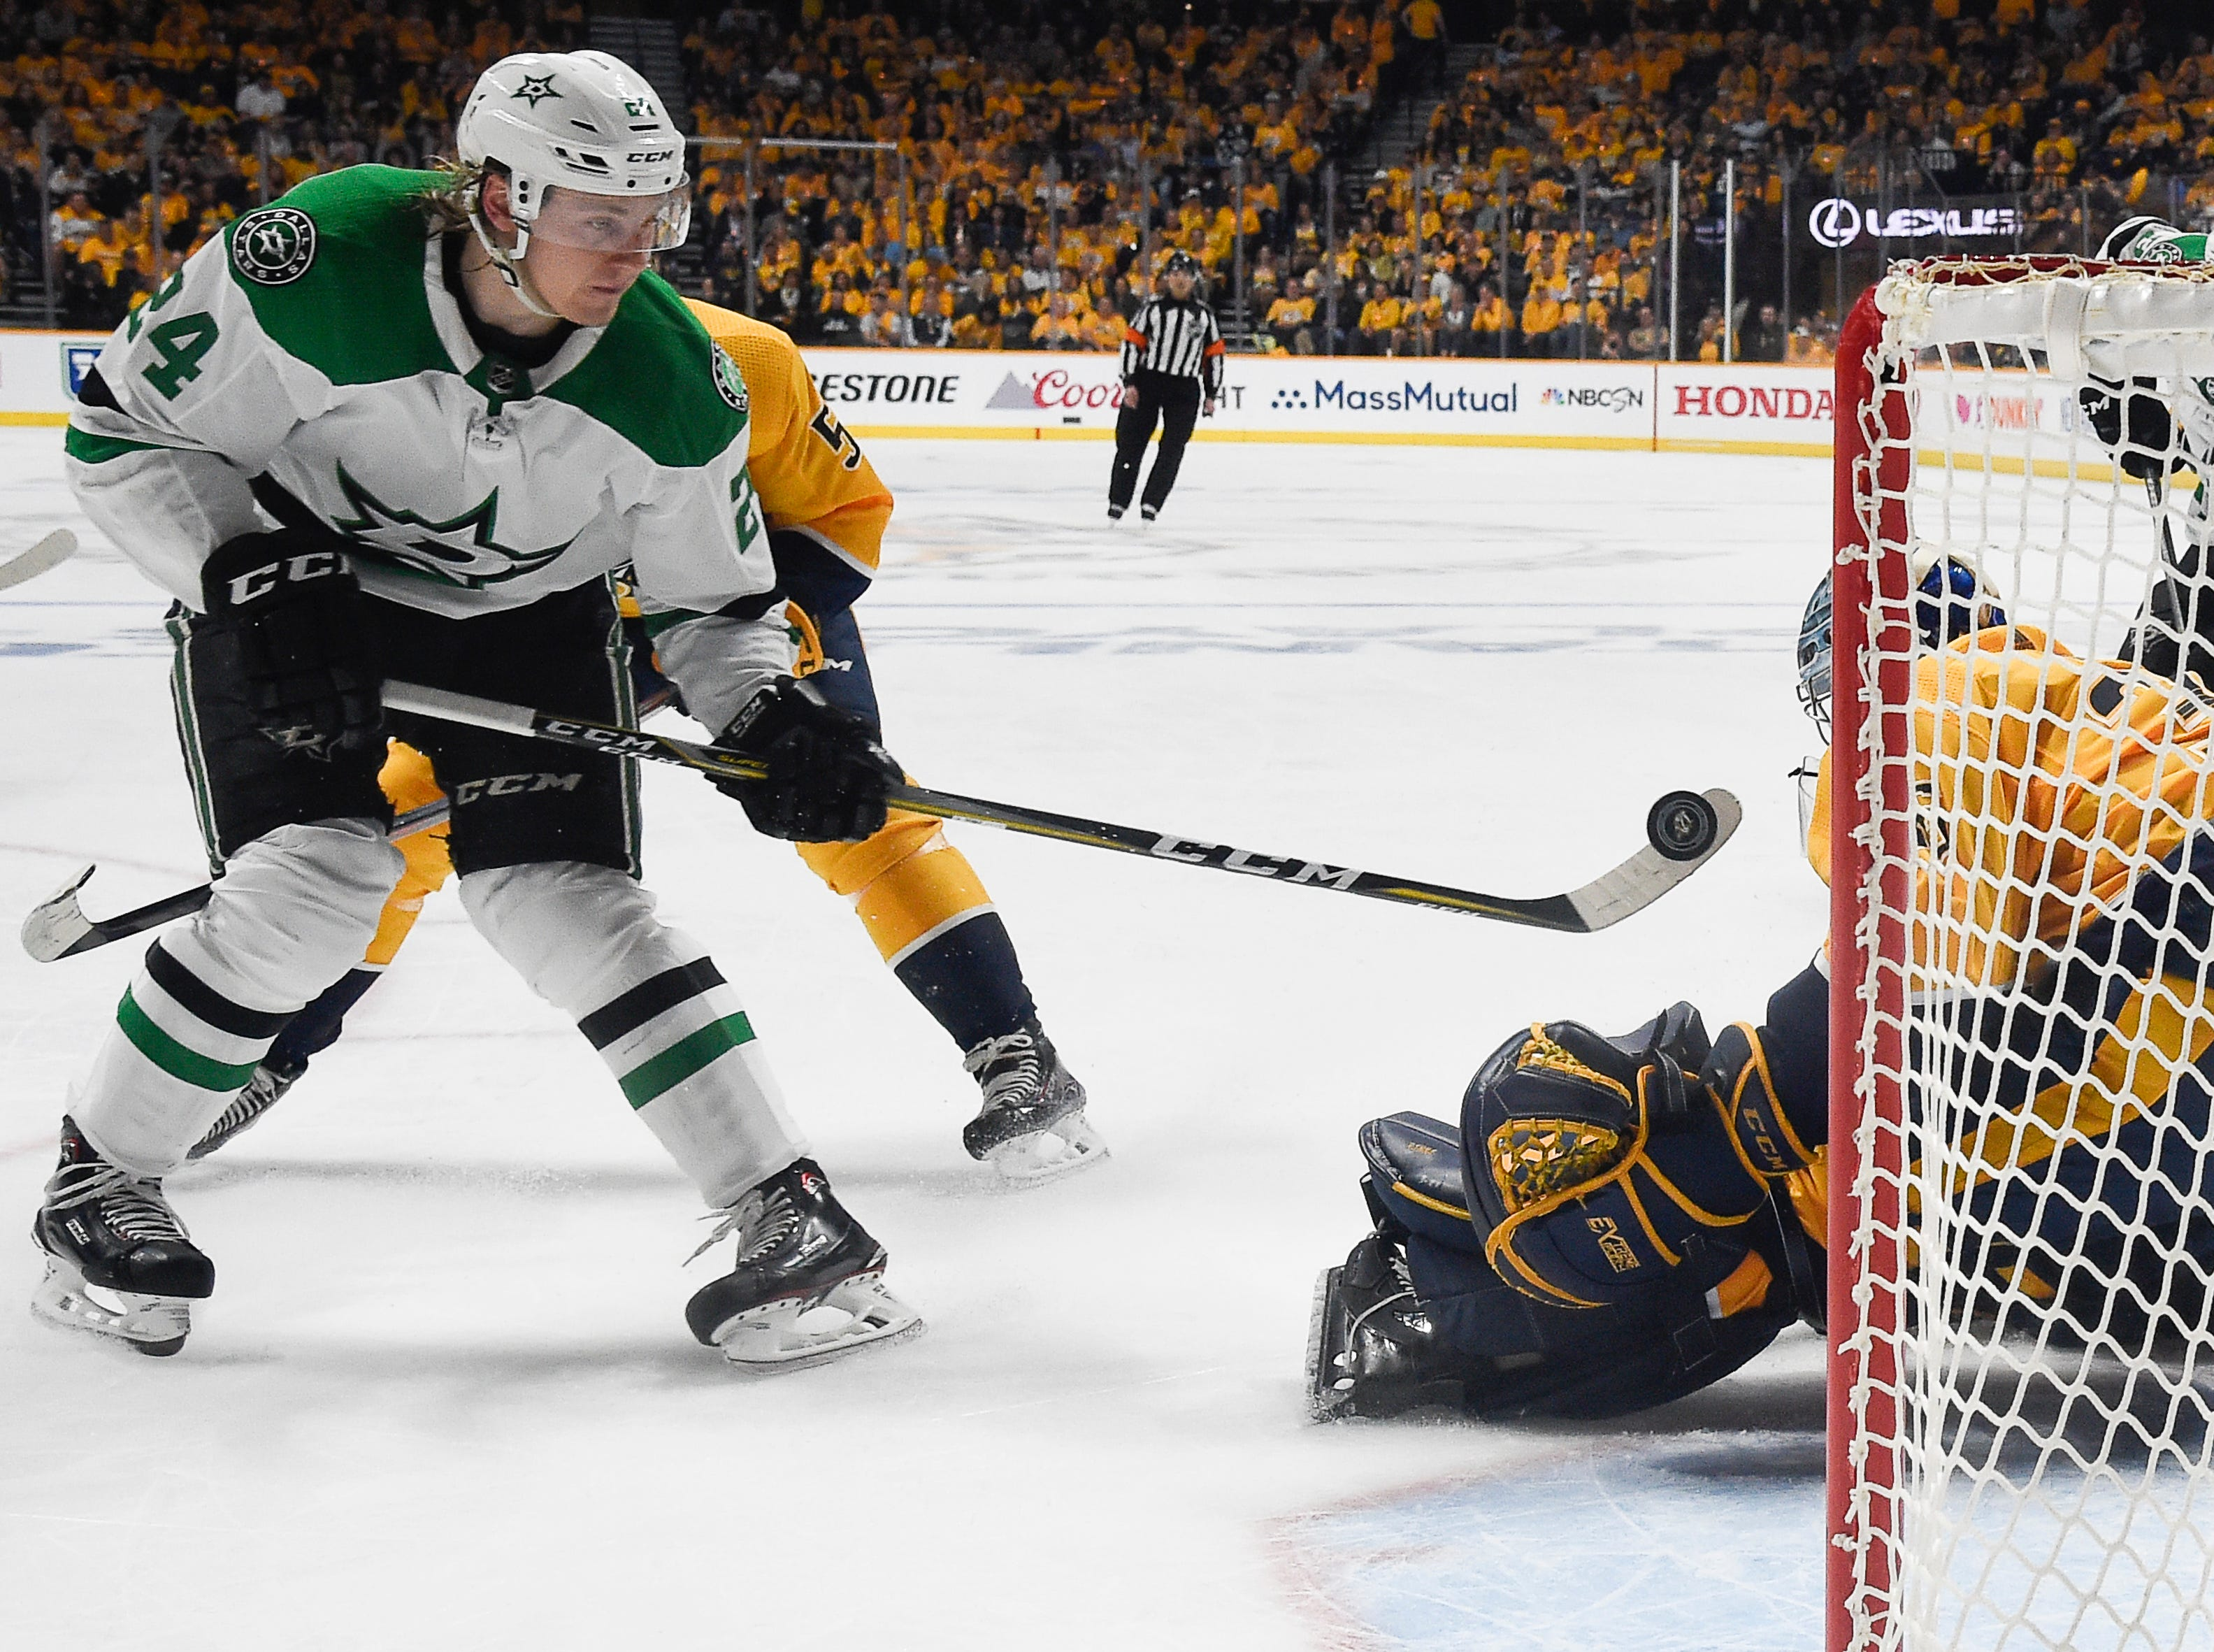 Dallas Stars left wing Roope Hintz (24) tries to shoot past Nashville Predators goaltender Pekka Rinne (35) during the second period of the divisional semifinal game at Bridgestone Arena Wednesday, April 10, 2019 in Nashville, Tenn.